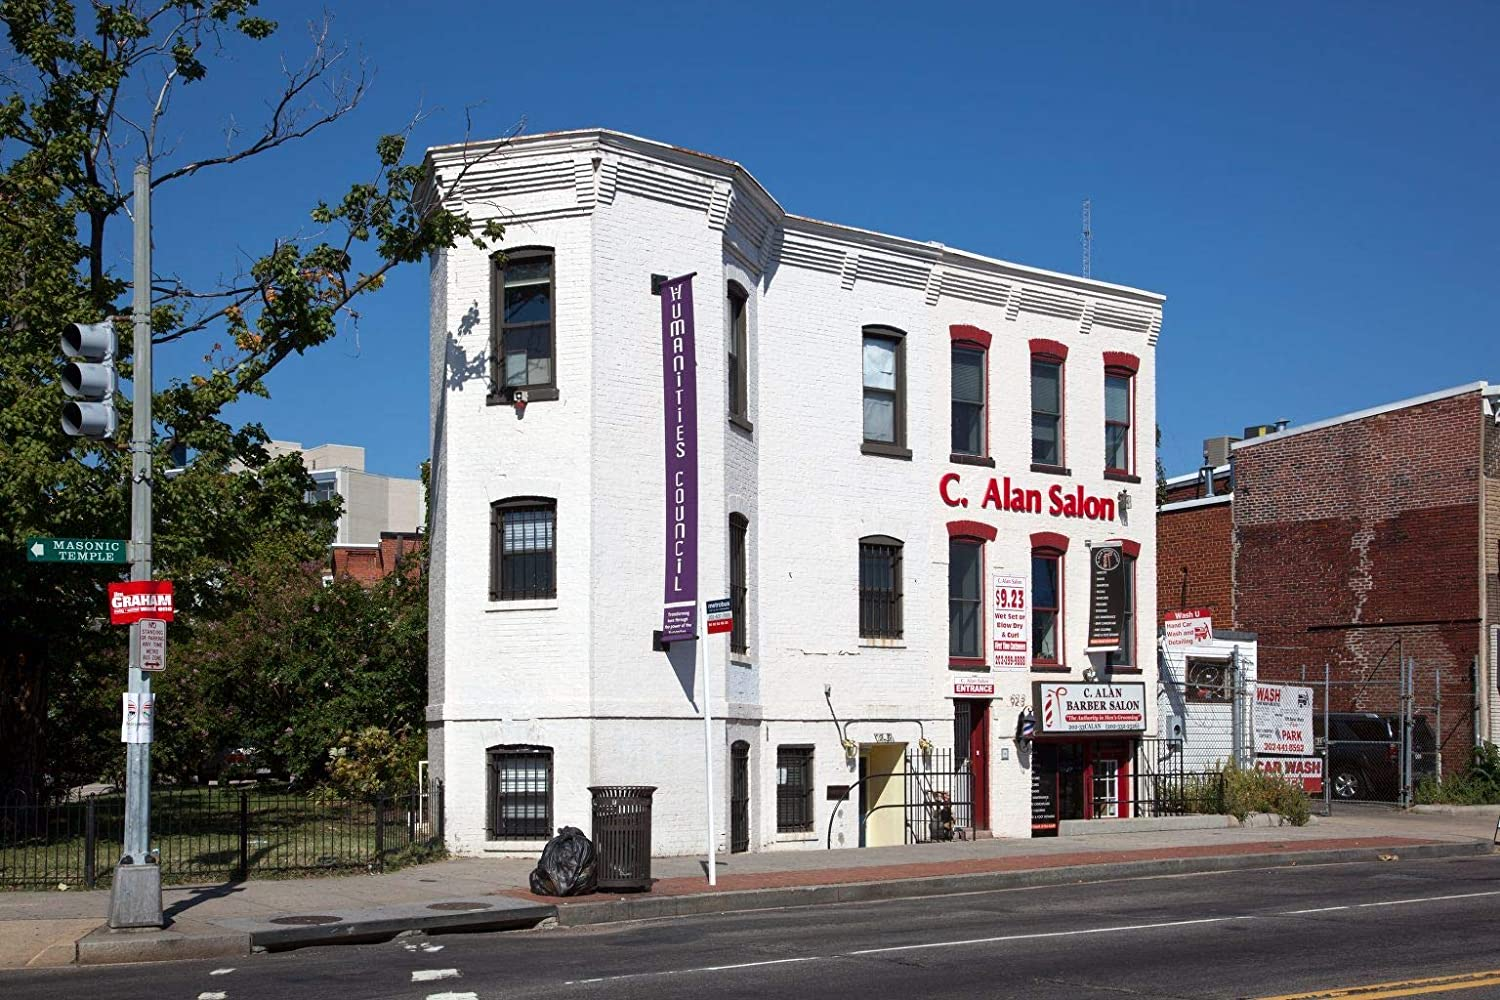 Vintography 24 x 36 Giclee Print ofBuilding at The Intersection of U St and Vermont Ave NW Washington D.C. i47 2010 Highsmith